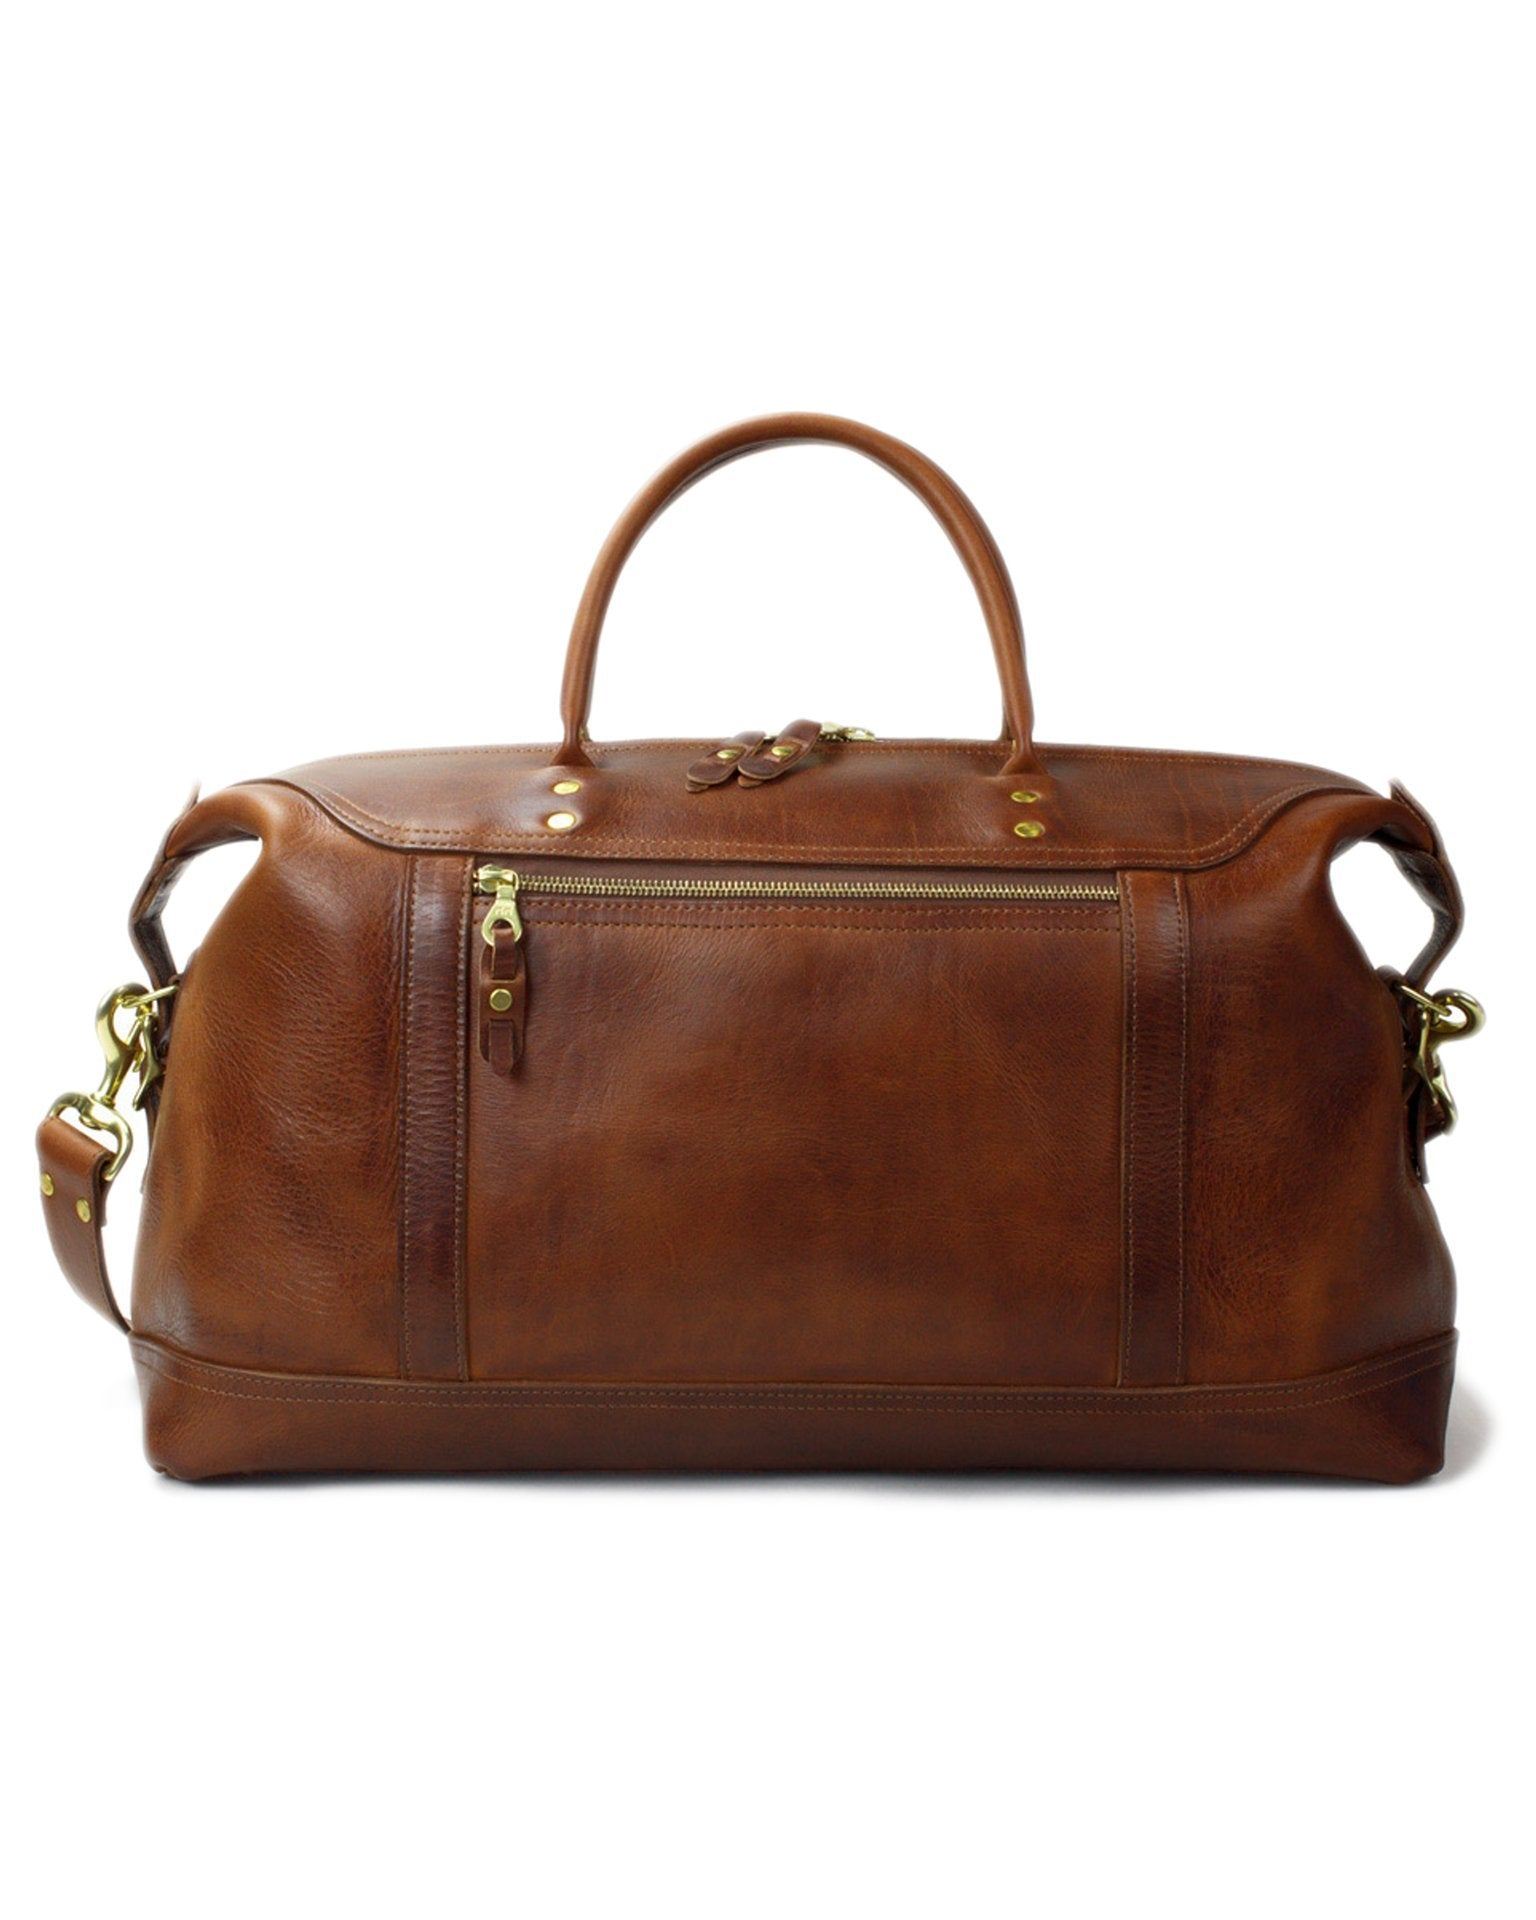 J.W. Hulme Co. Accessories American Heritage / O/S Weekend Satchel